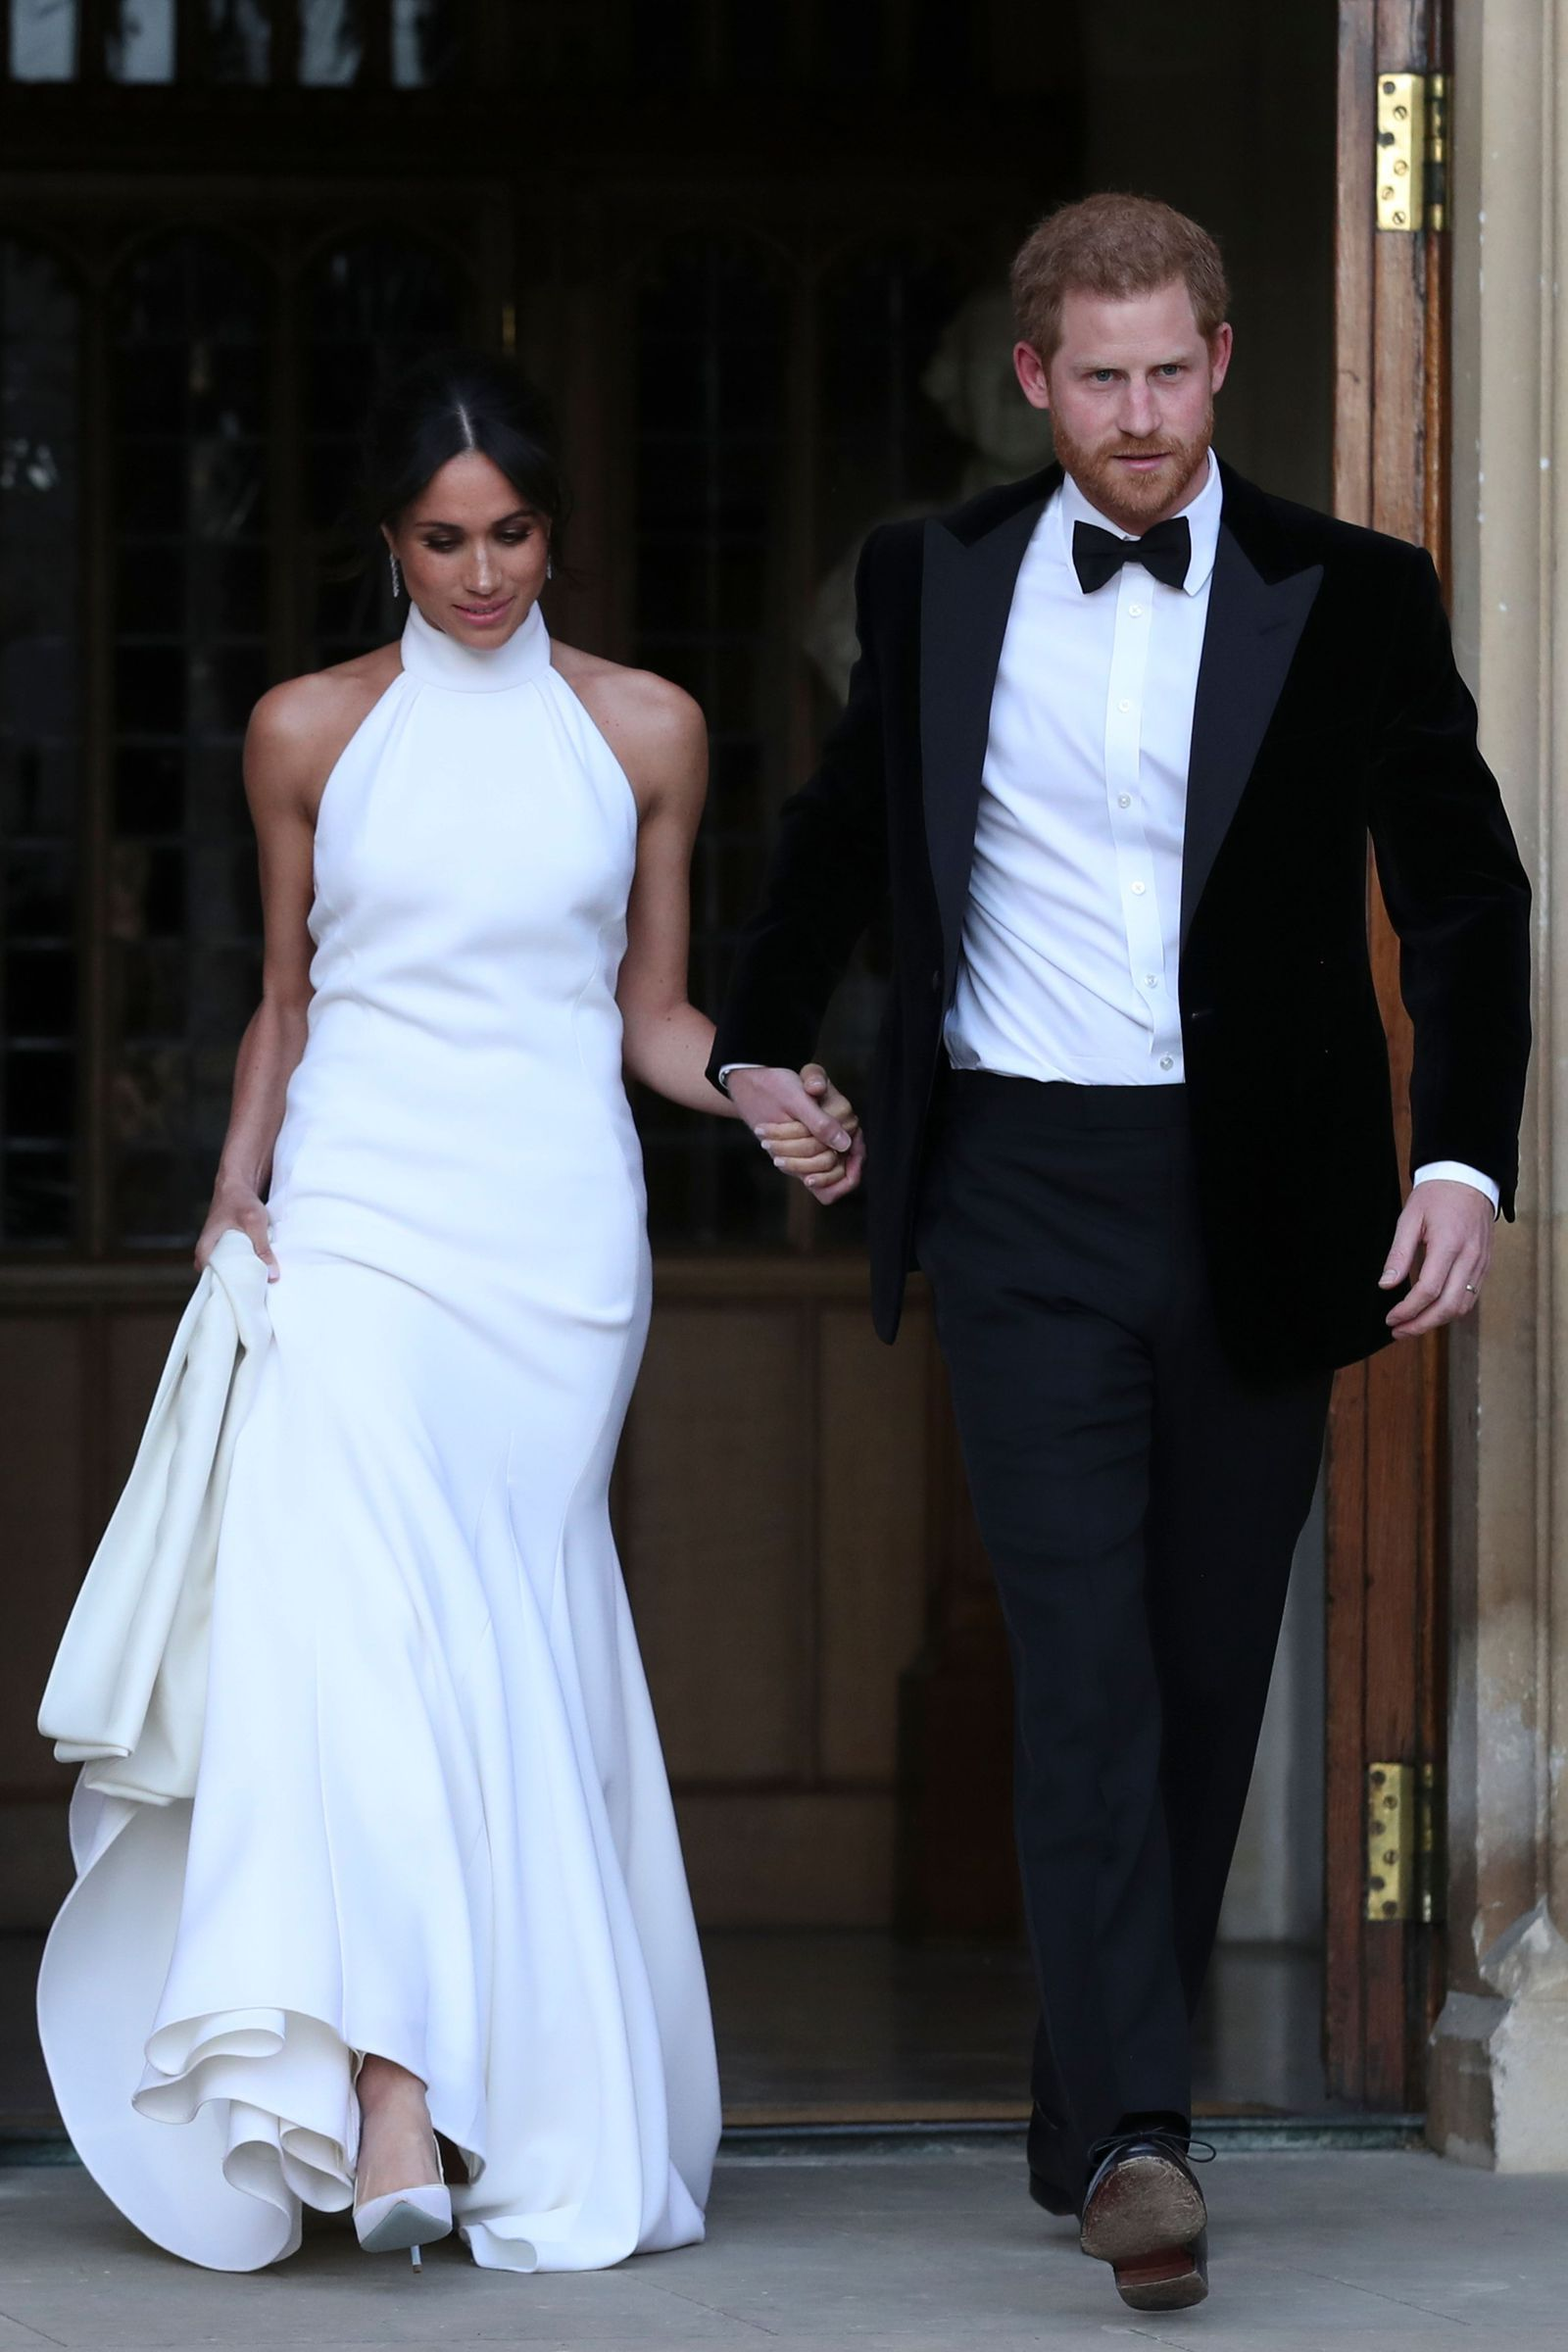 Meghan Markle S Second Wedding Dress Was Even More Stunning Than The First Meghan Markle Wedding Dress Second Wedding Dresses Debut Dresses